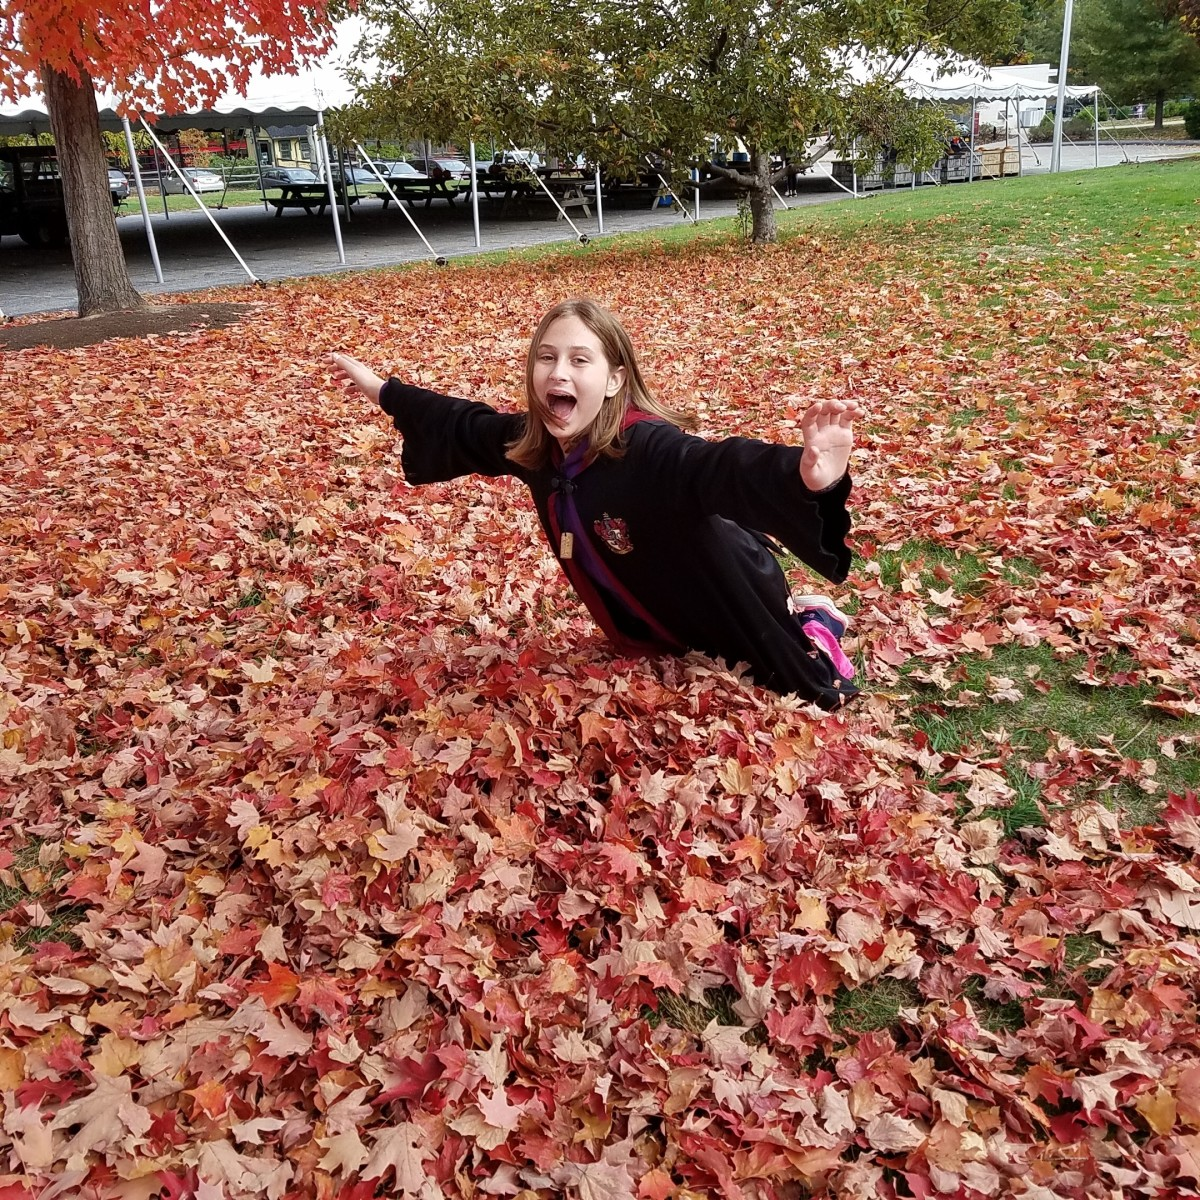 My daughter wearing a Harry Potter robe as she falls into a pile of leaves at the Ecotarium in Worcester, MA